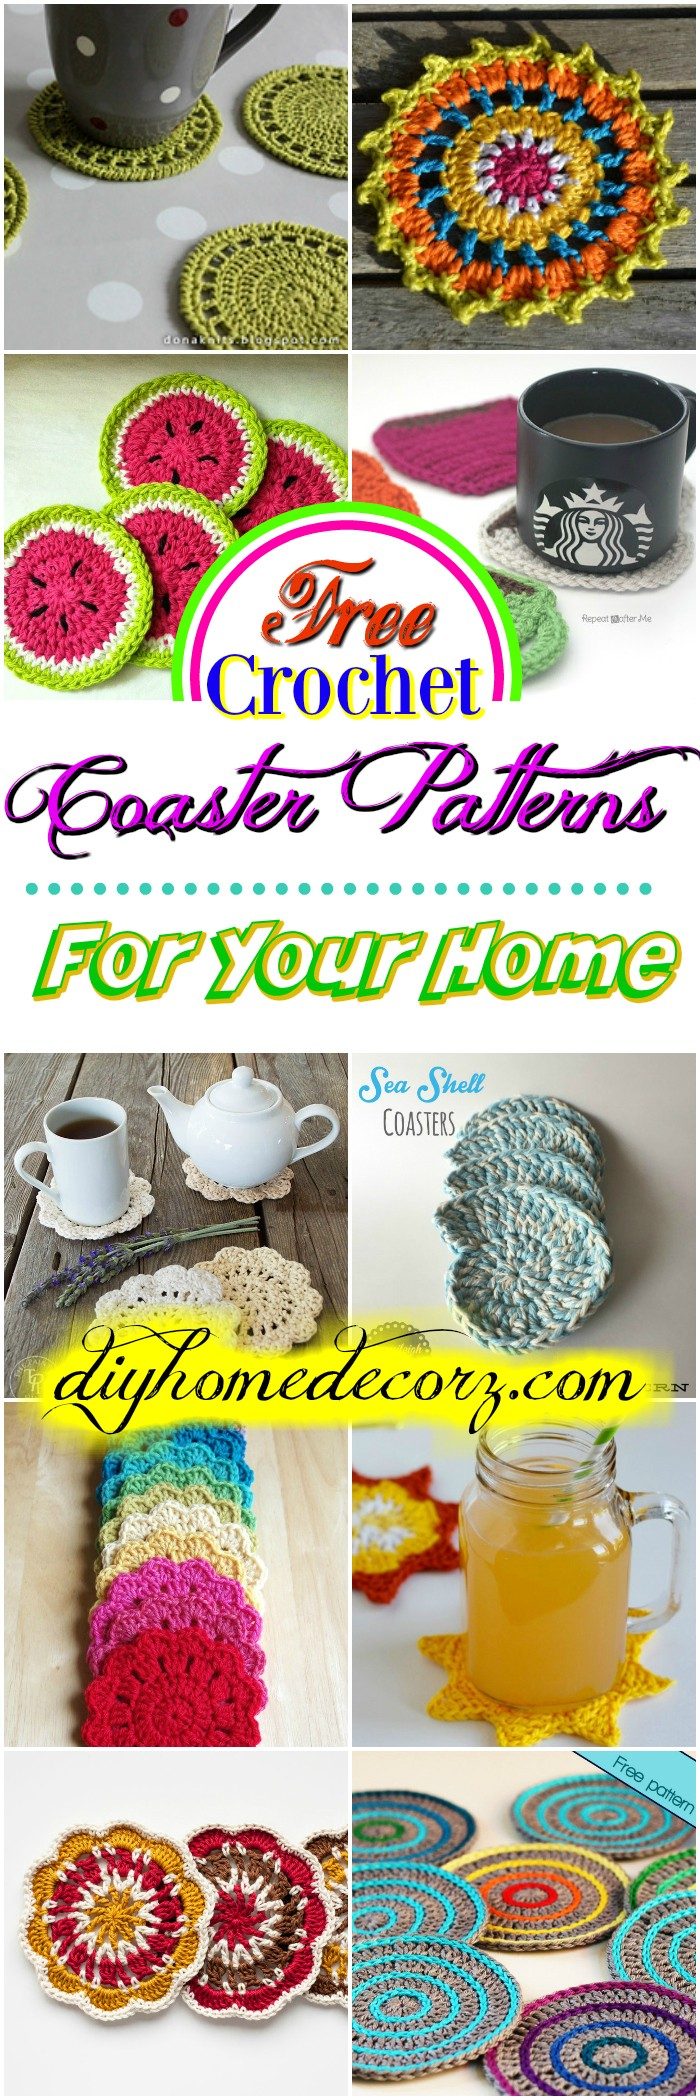 Free Crochet Coaster Patterns Free Crochet Coaster Patterns For Your Home